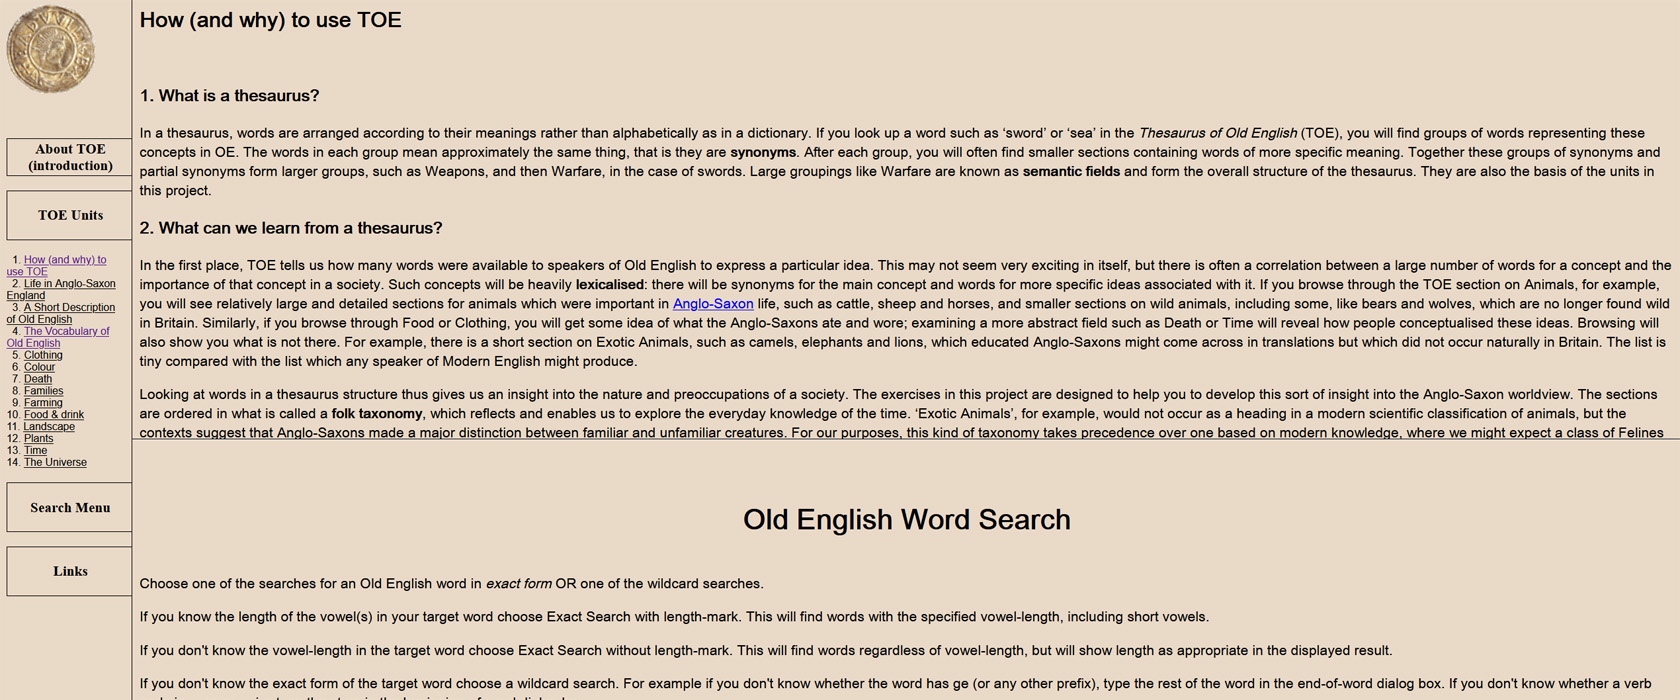 Learning with the online Thesaurus of Old English (TOE)